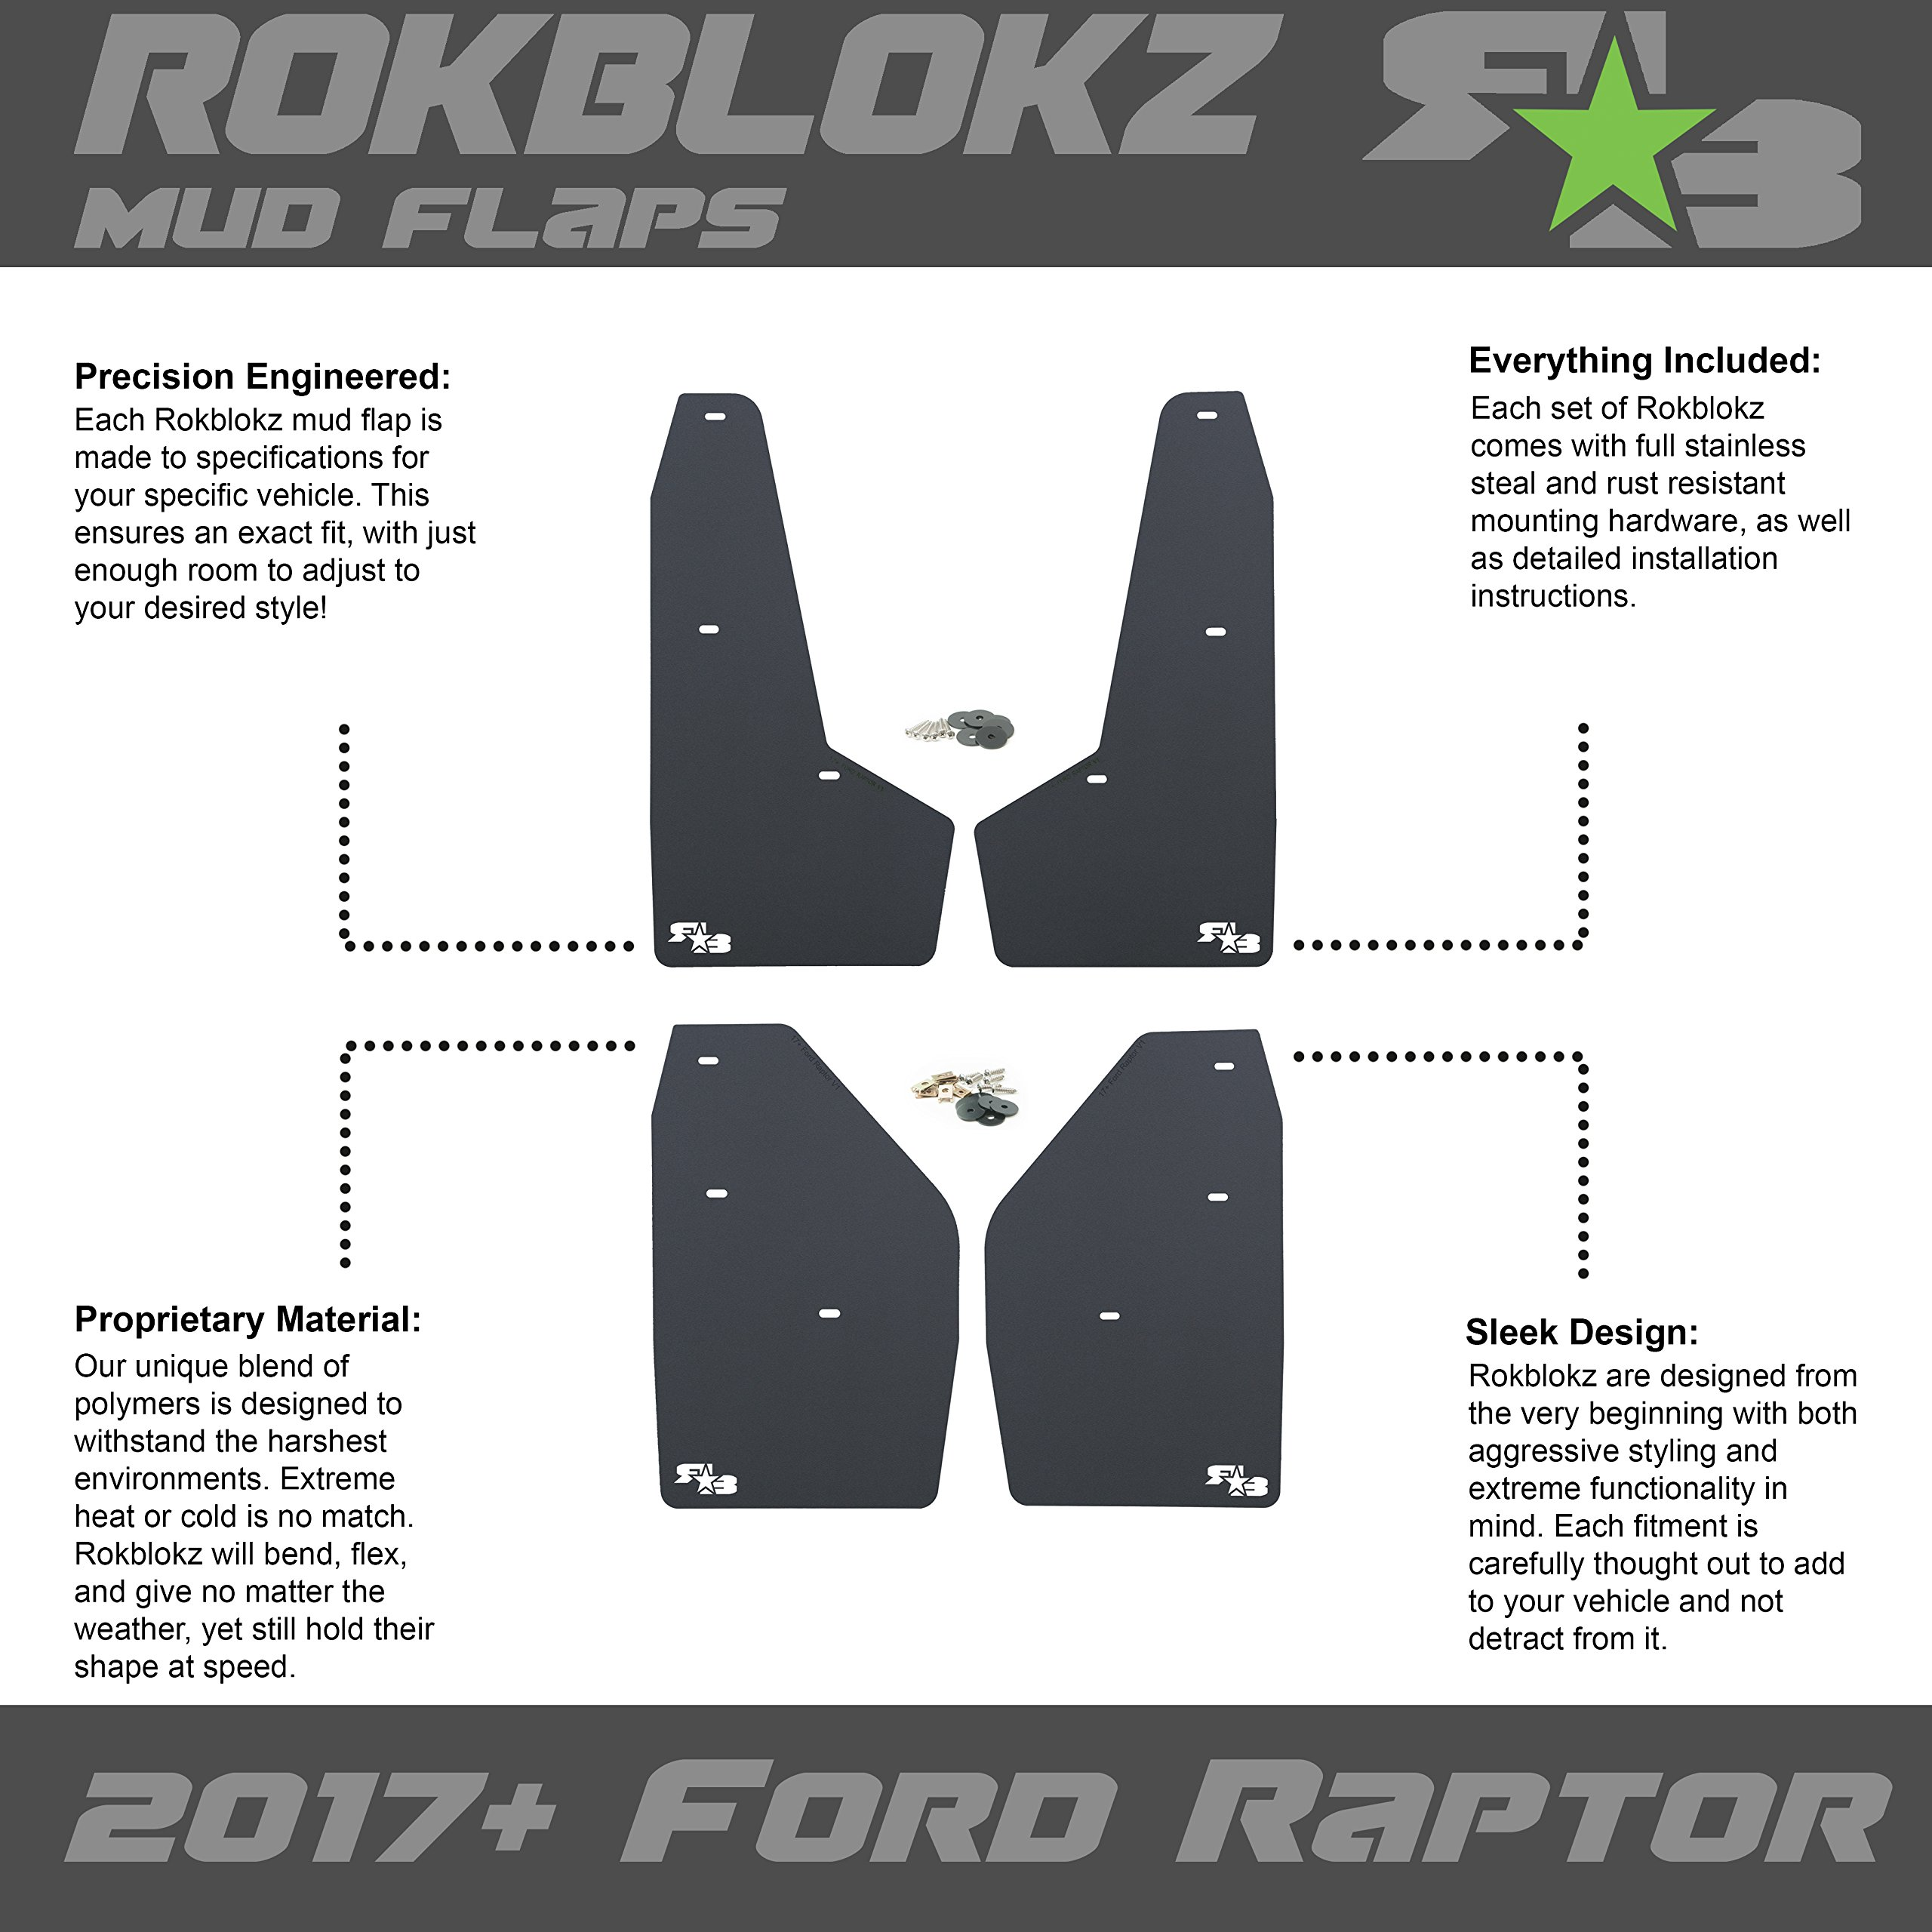 Multiple Colors Available Set of 4 RokBlokz Mud Flaps for 2017+ Ford Raptor Includes All Mounting Hardware Black with Black Logo